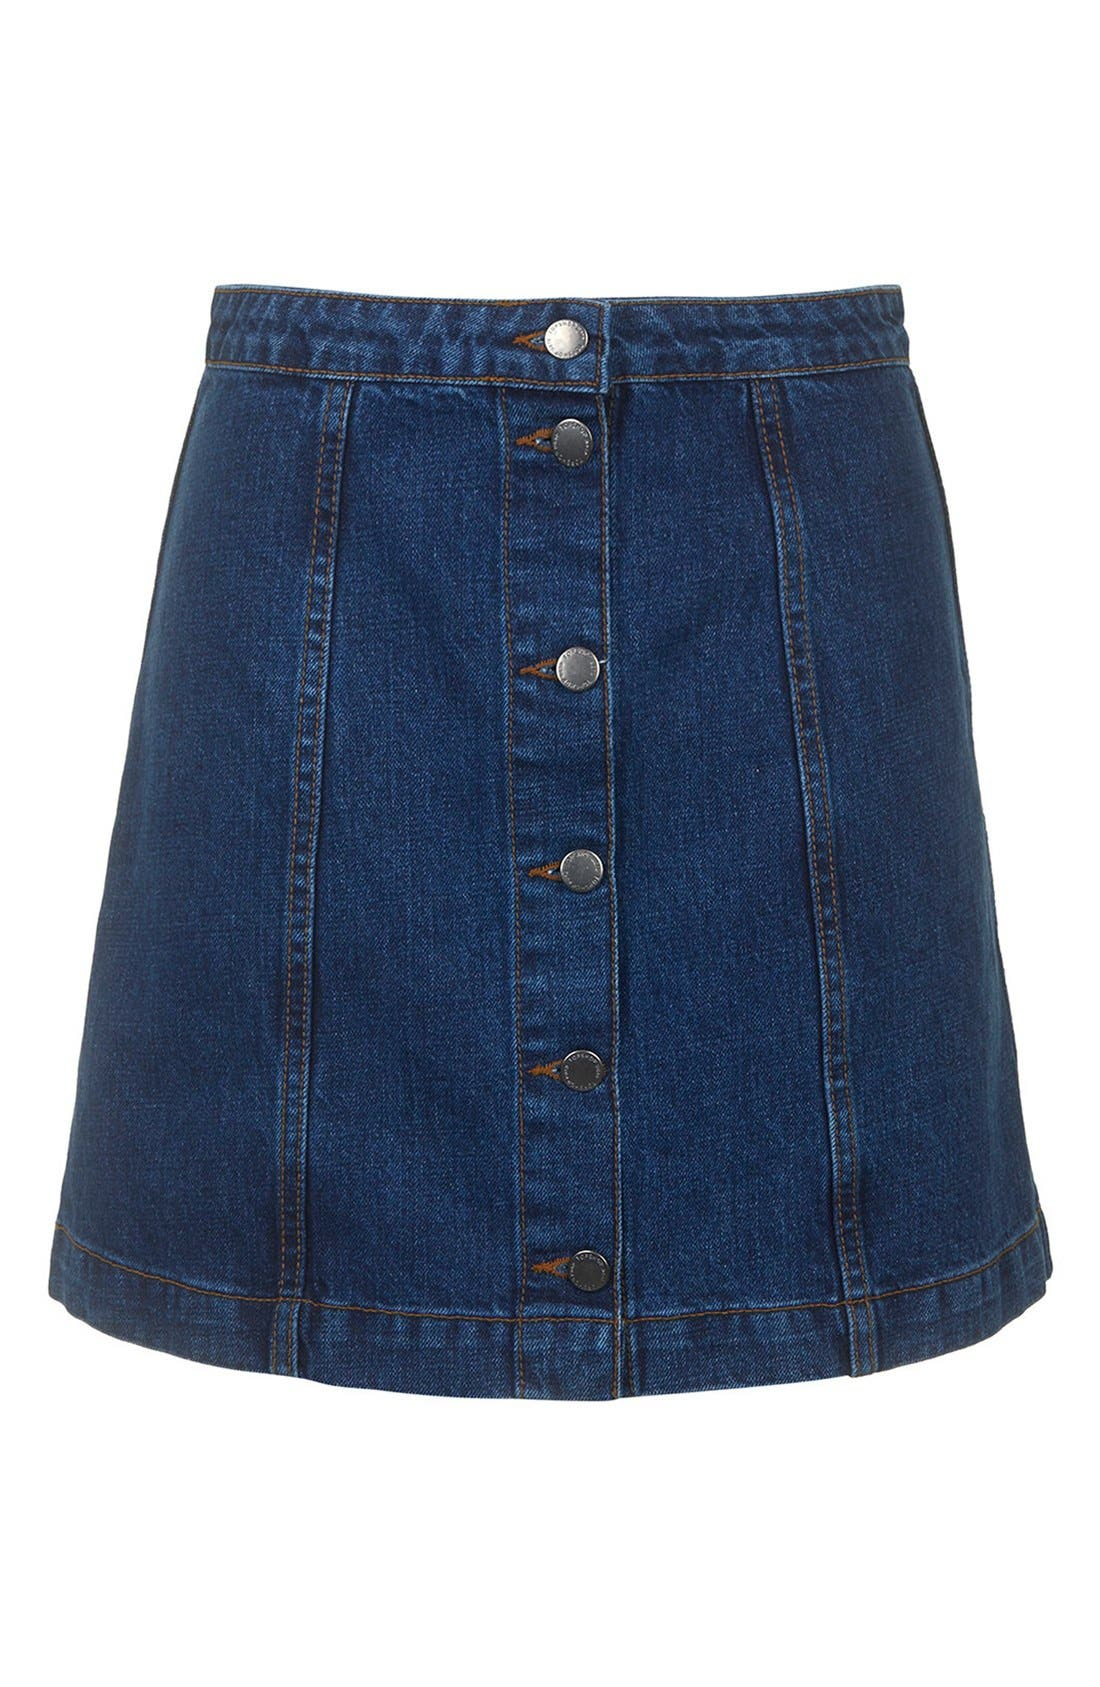 Moto Button Front Denim Miniskirt,                             Alternate thumbnail 4, color,                             400